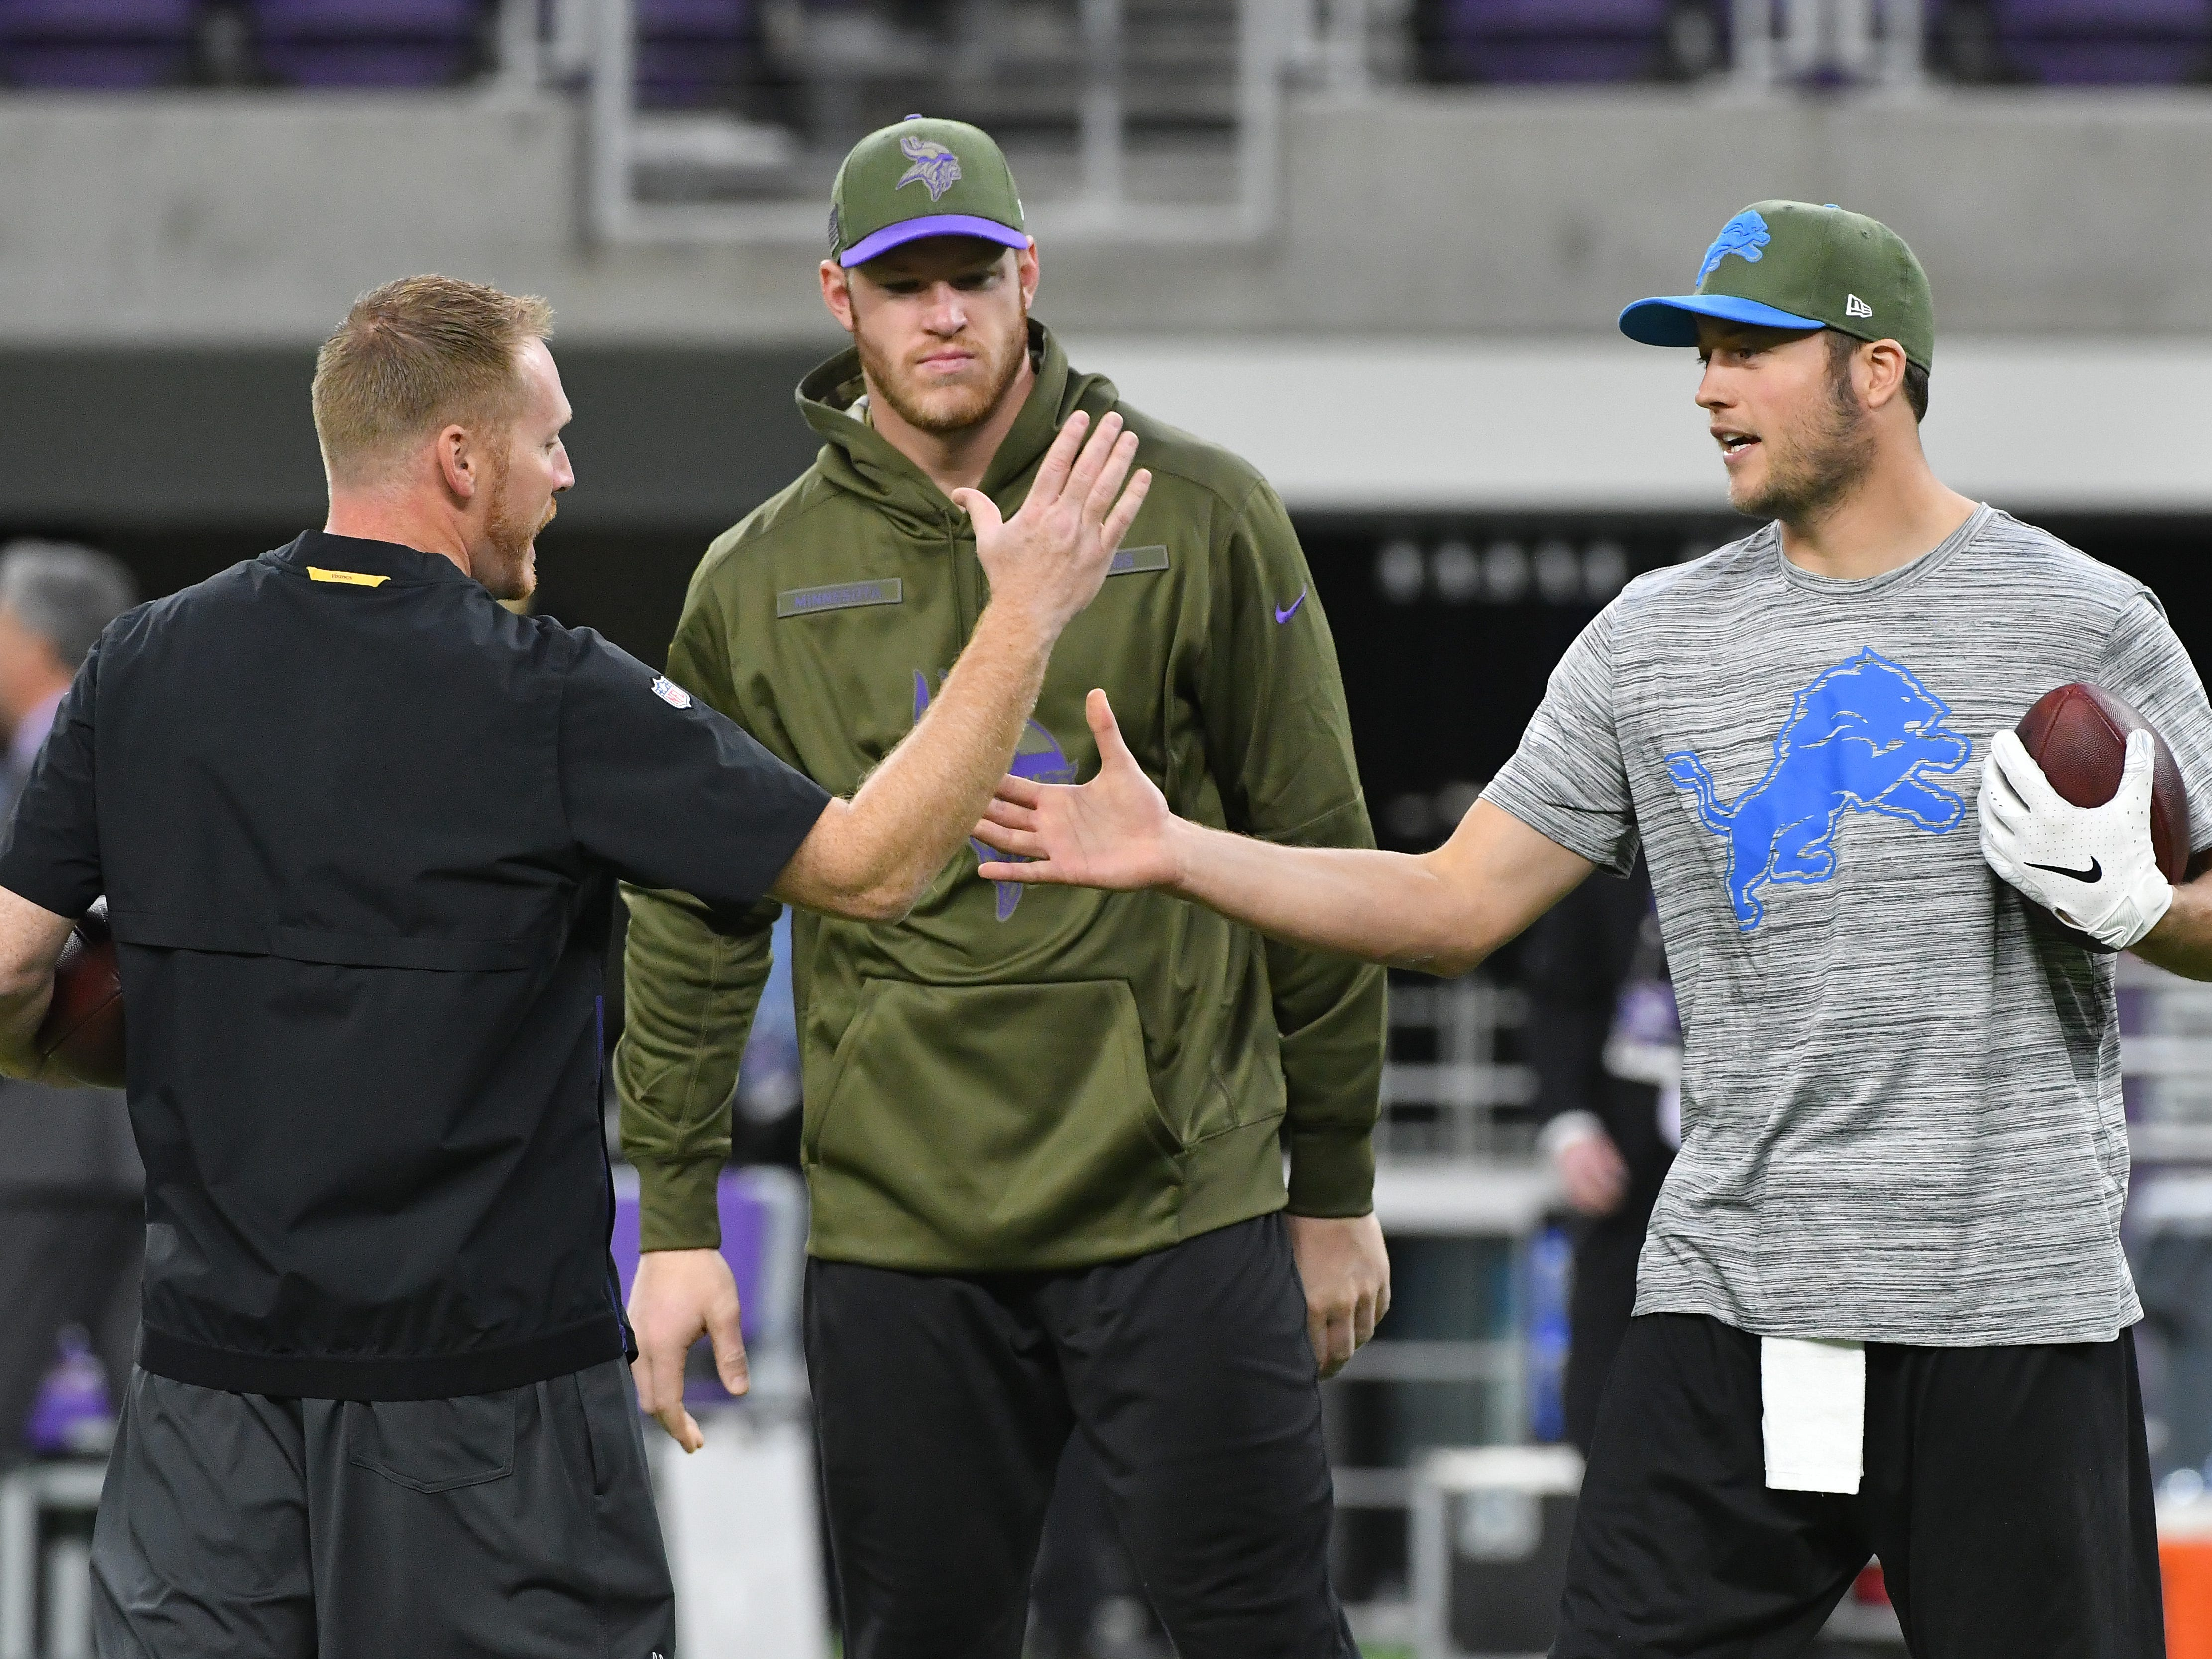 Former Lions quarterback coach Todd Downing, now tight ends coach with the Vikings and Minnesota tight end Kyle Rudolph catch up with Lions quarterback Matthew Stafford during warmups.